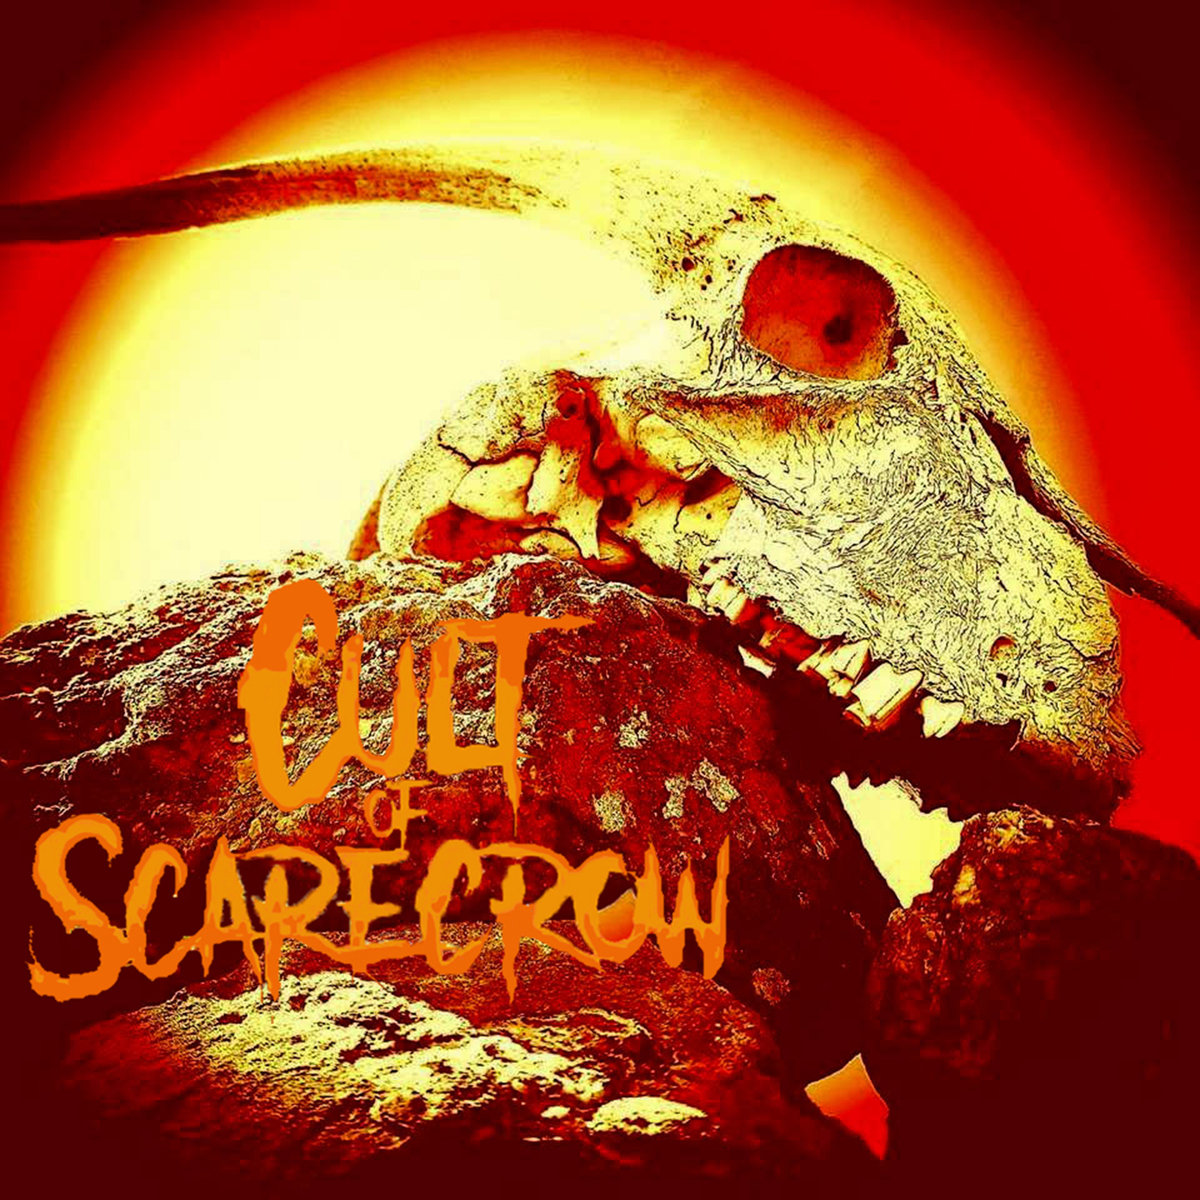 cult of scarecrow album cover